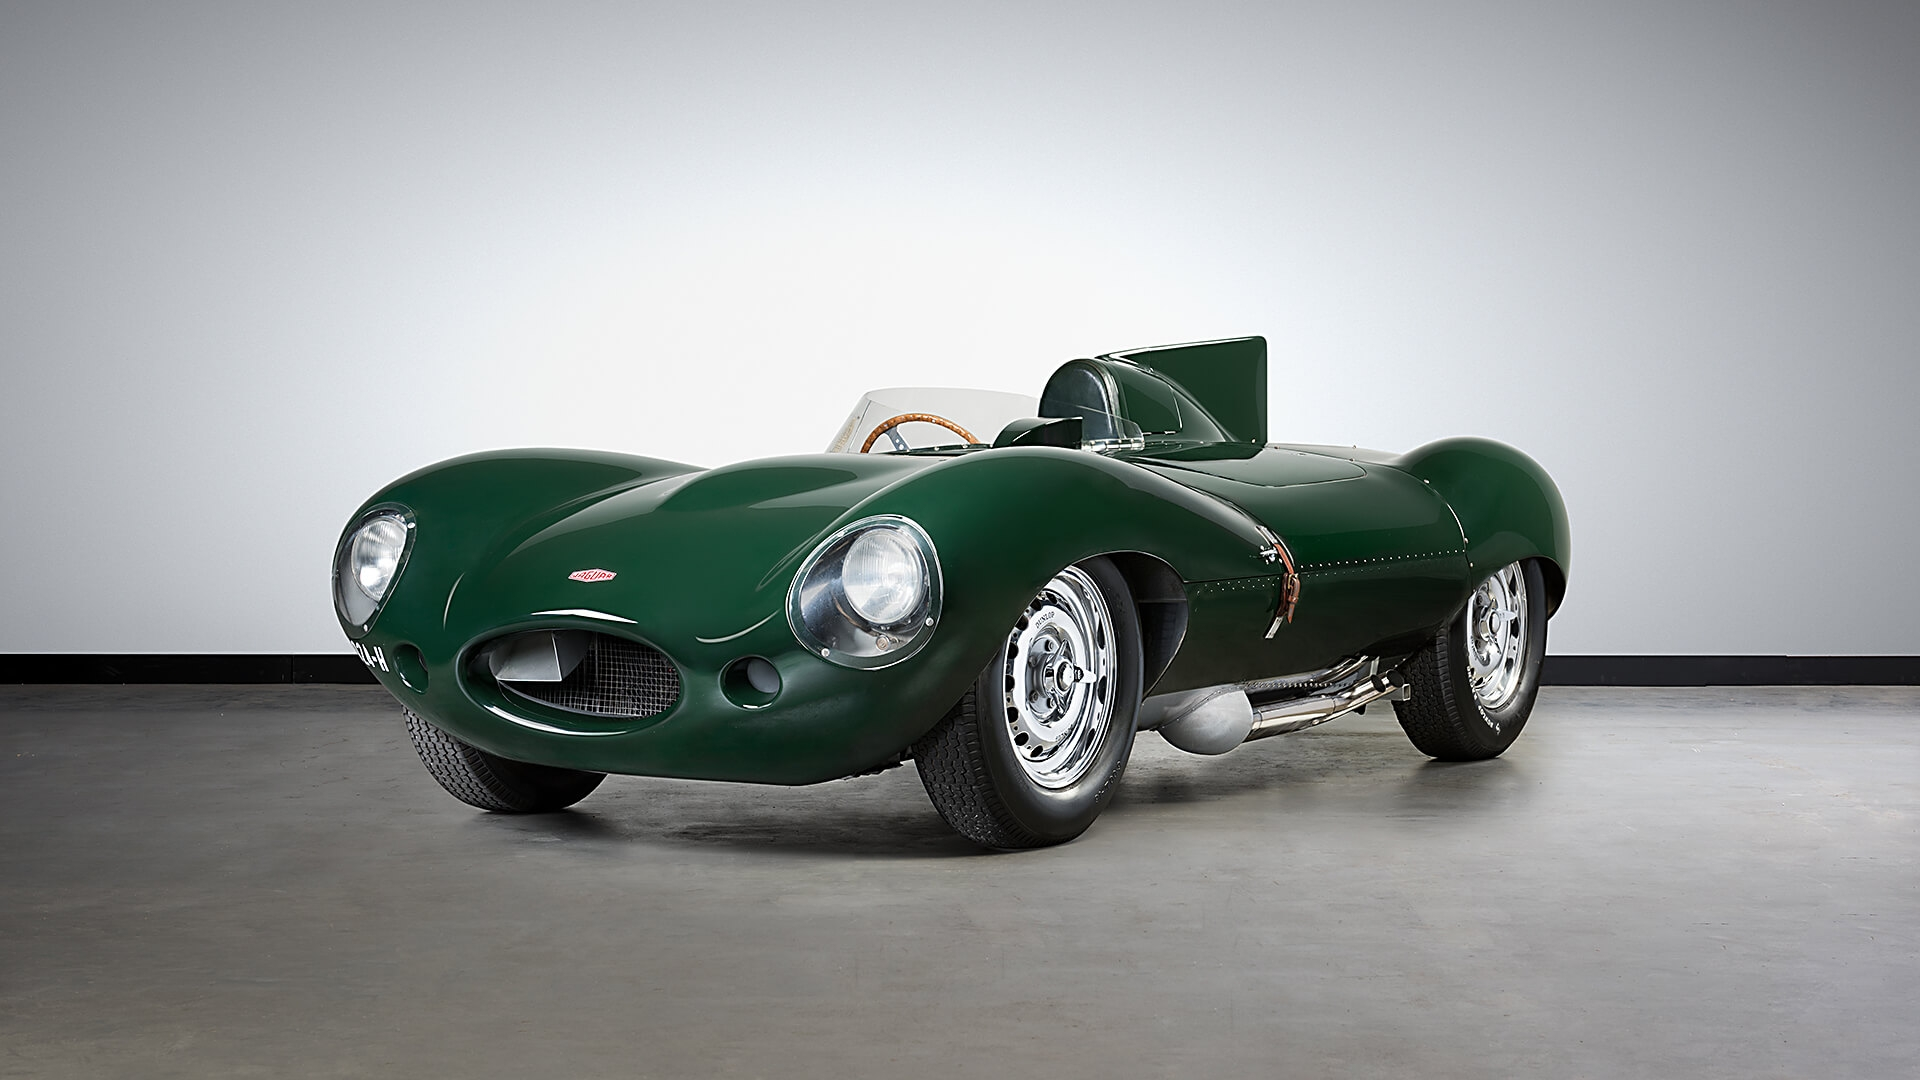 Mossgreen to offer down-under D-type at Motorclassica